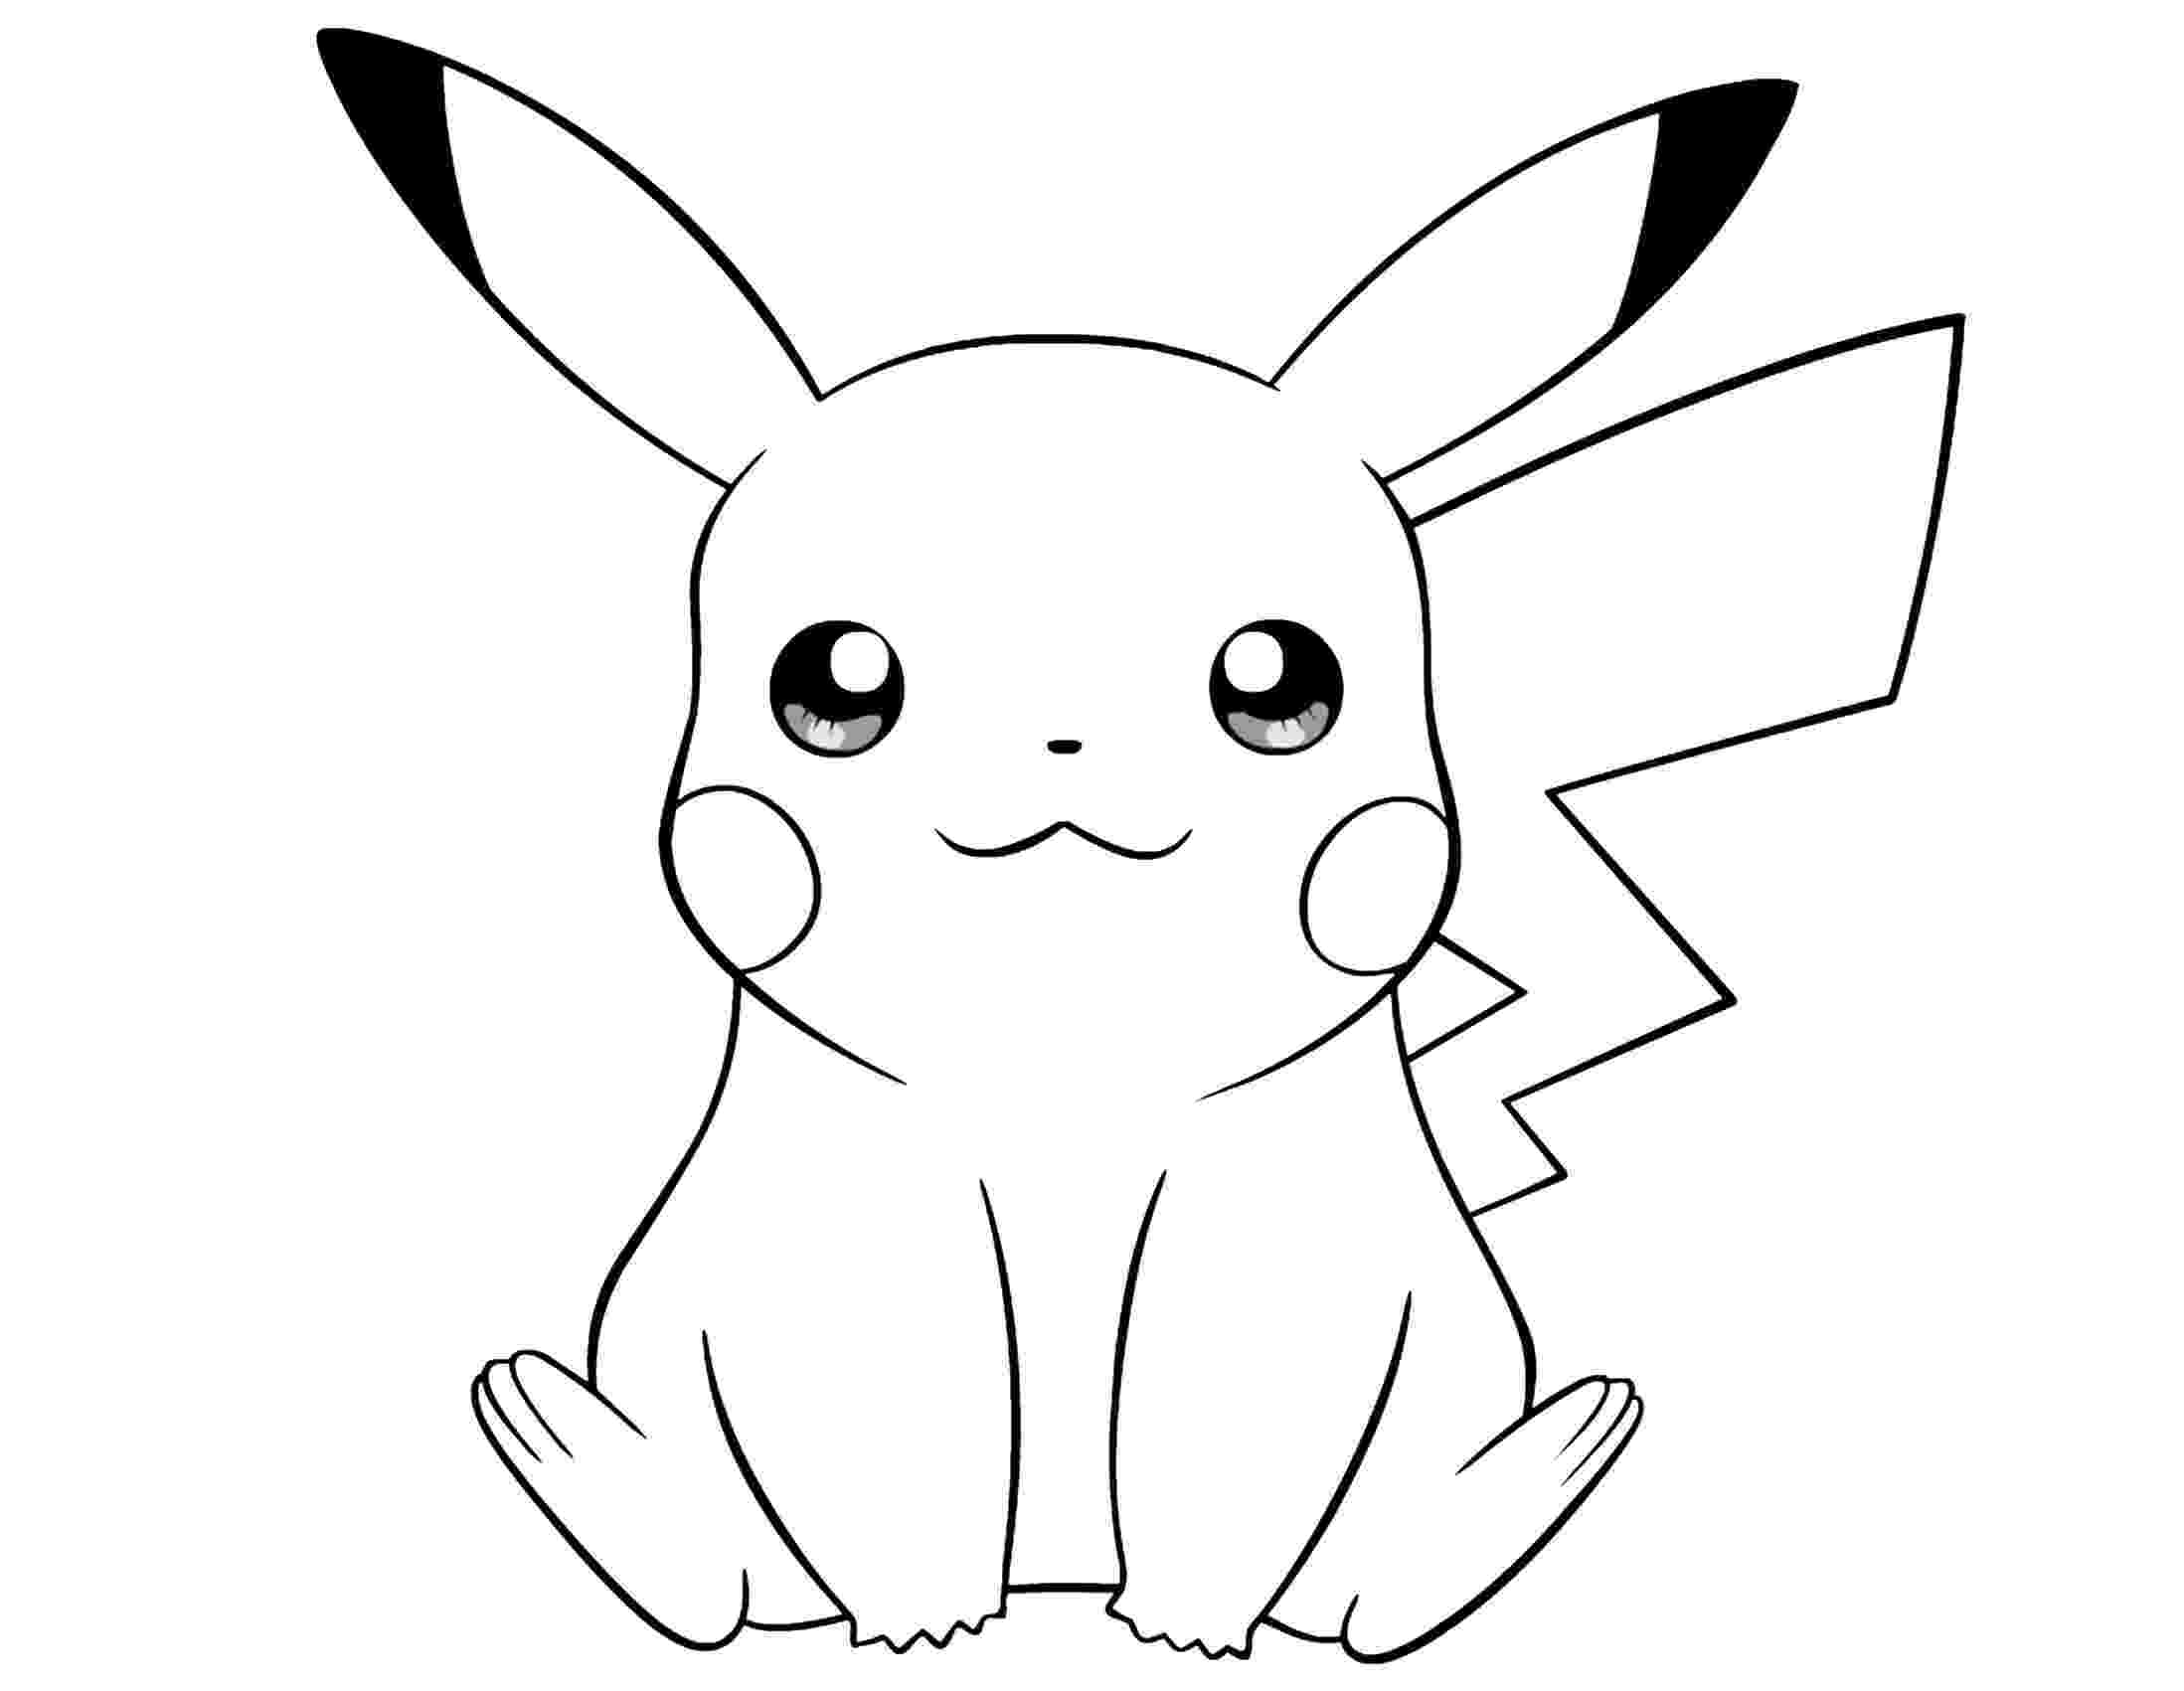 black and white colouring pages pikachu coloring pages to download and print for free white colouring and black pages